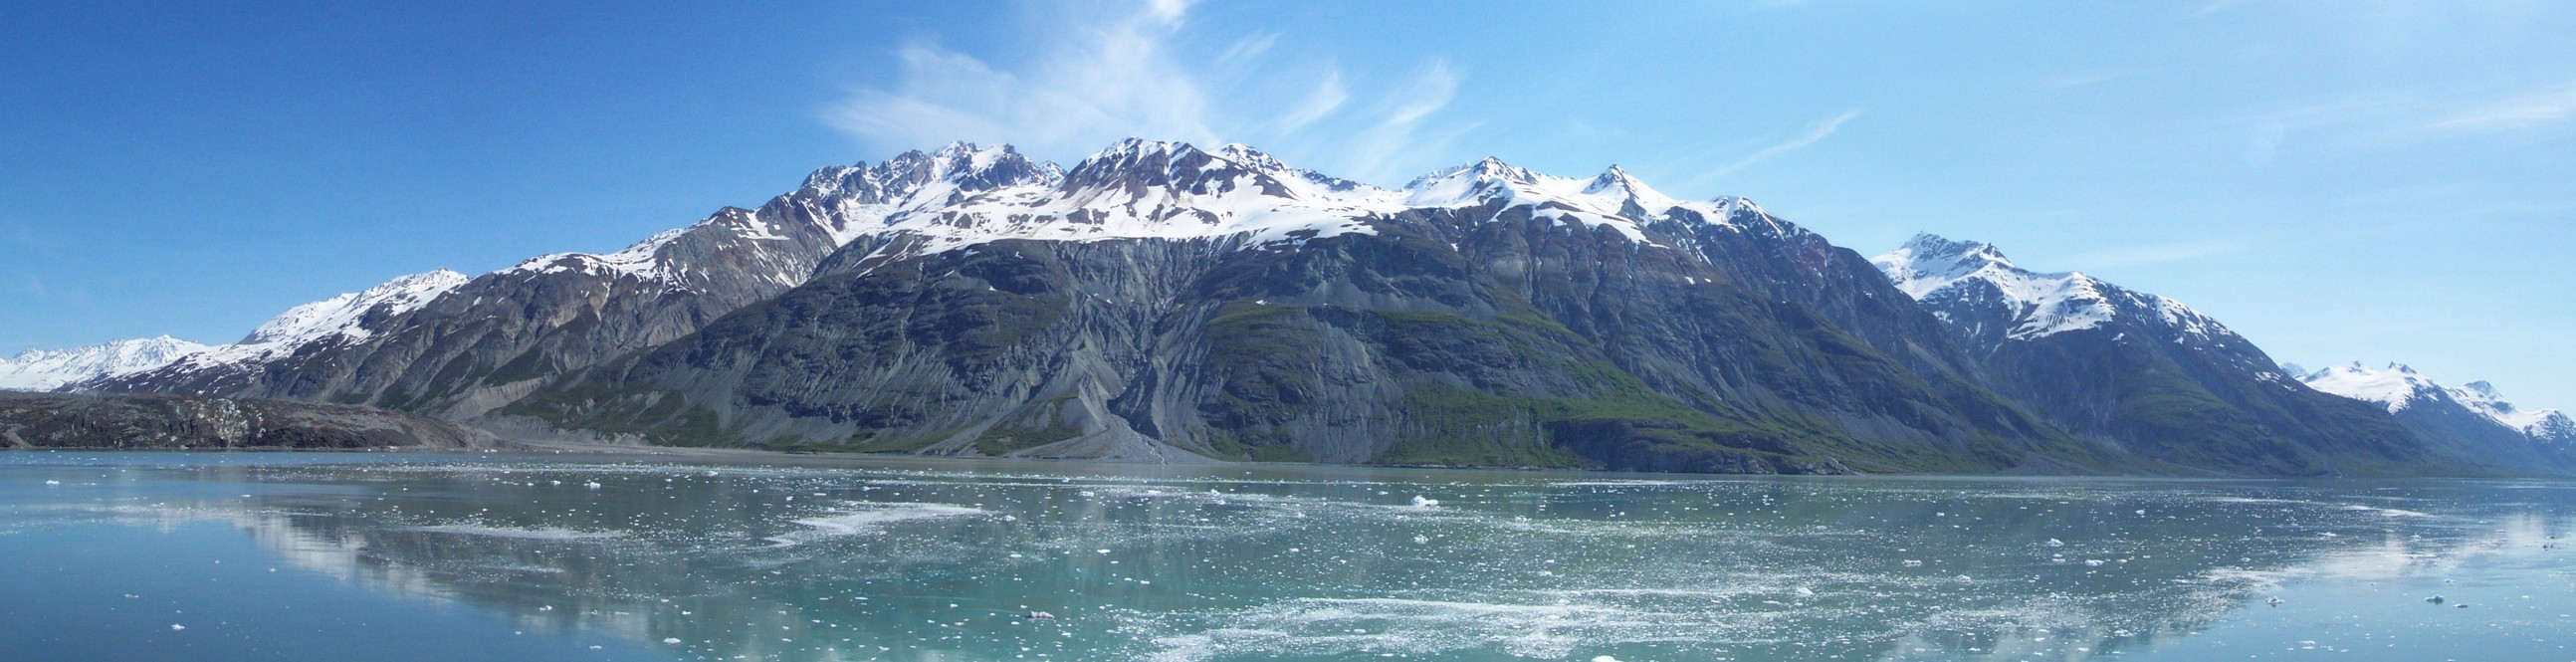 pano19_mountains_by_grand_pacific_glacier_panoramic_180.jpg